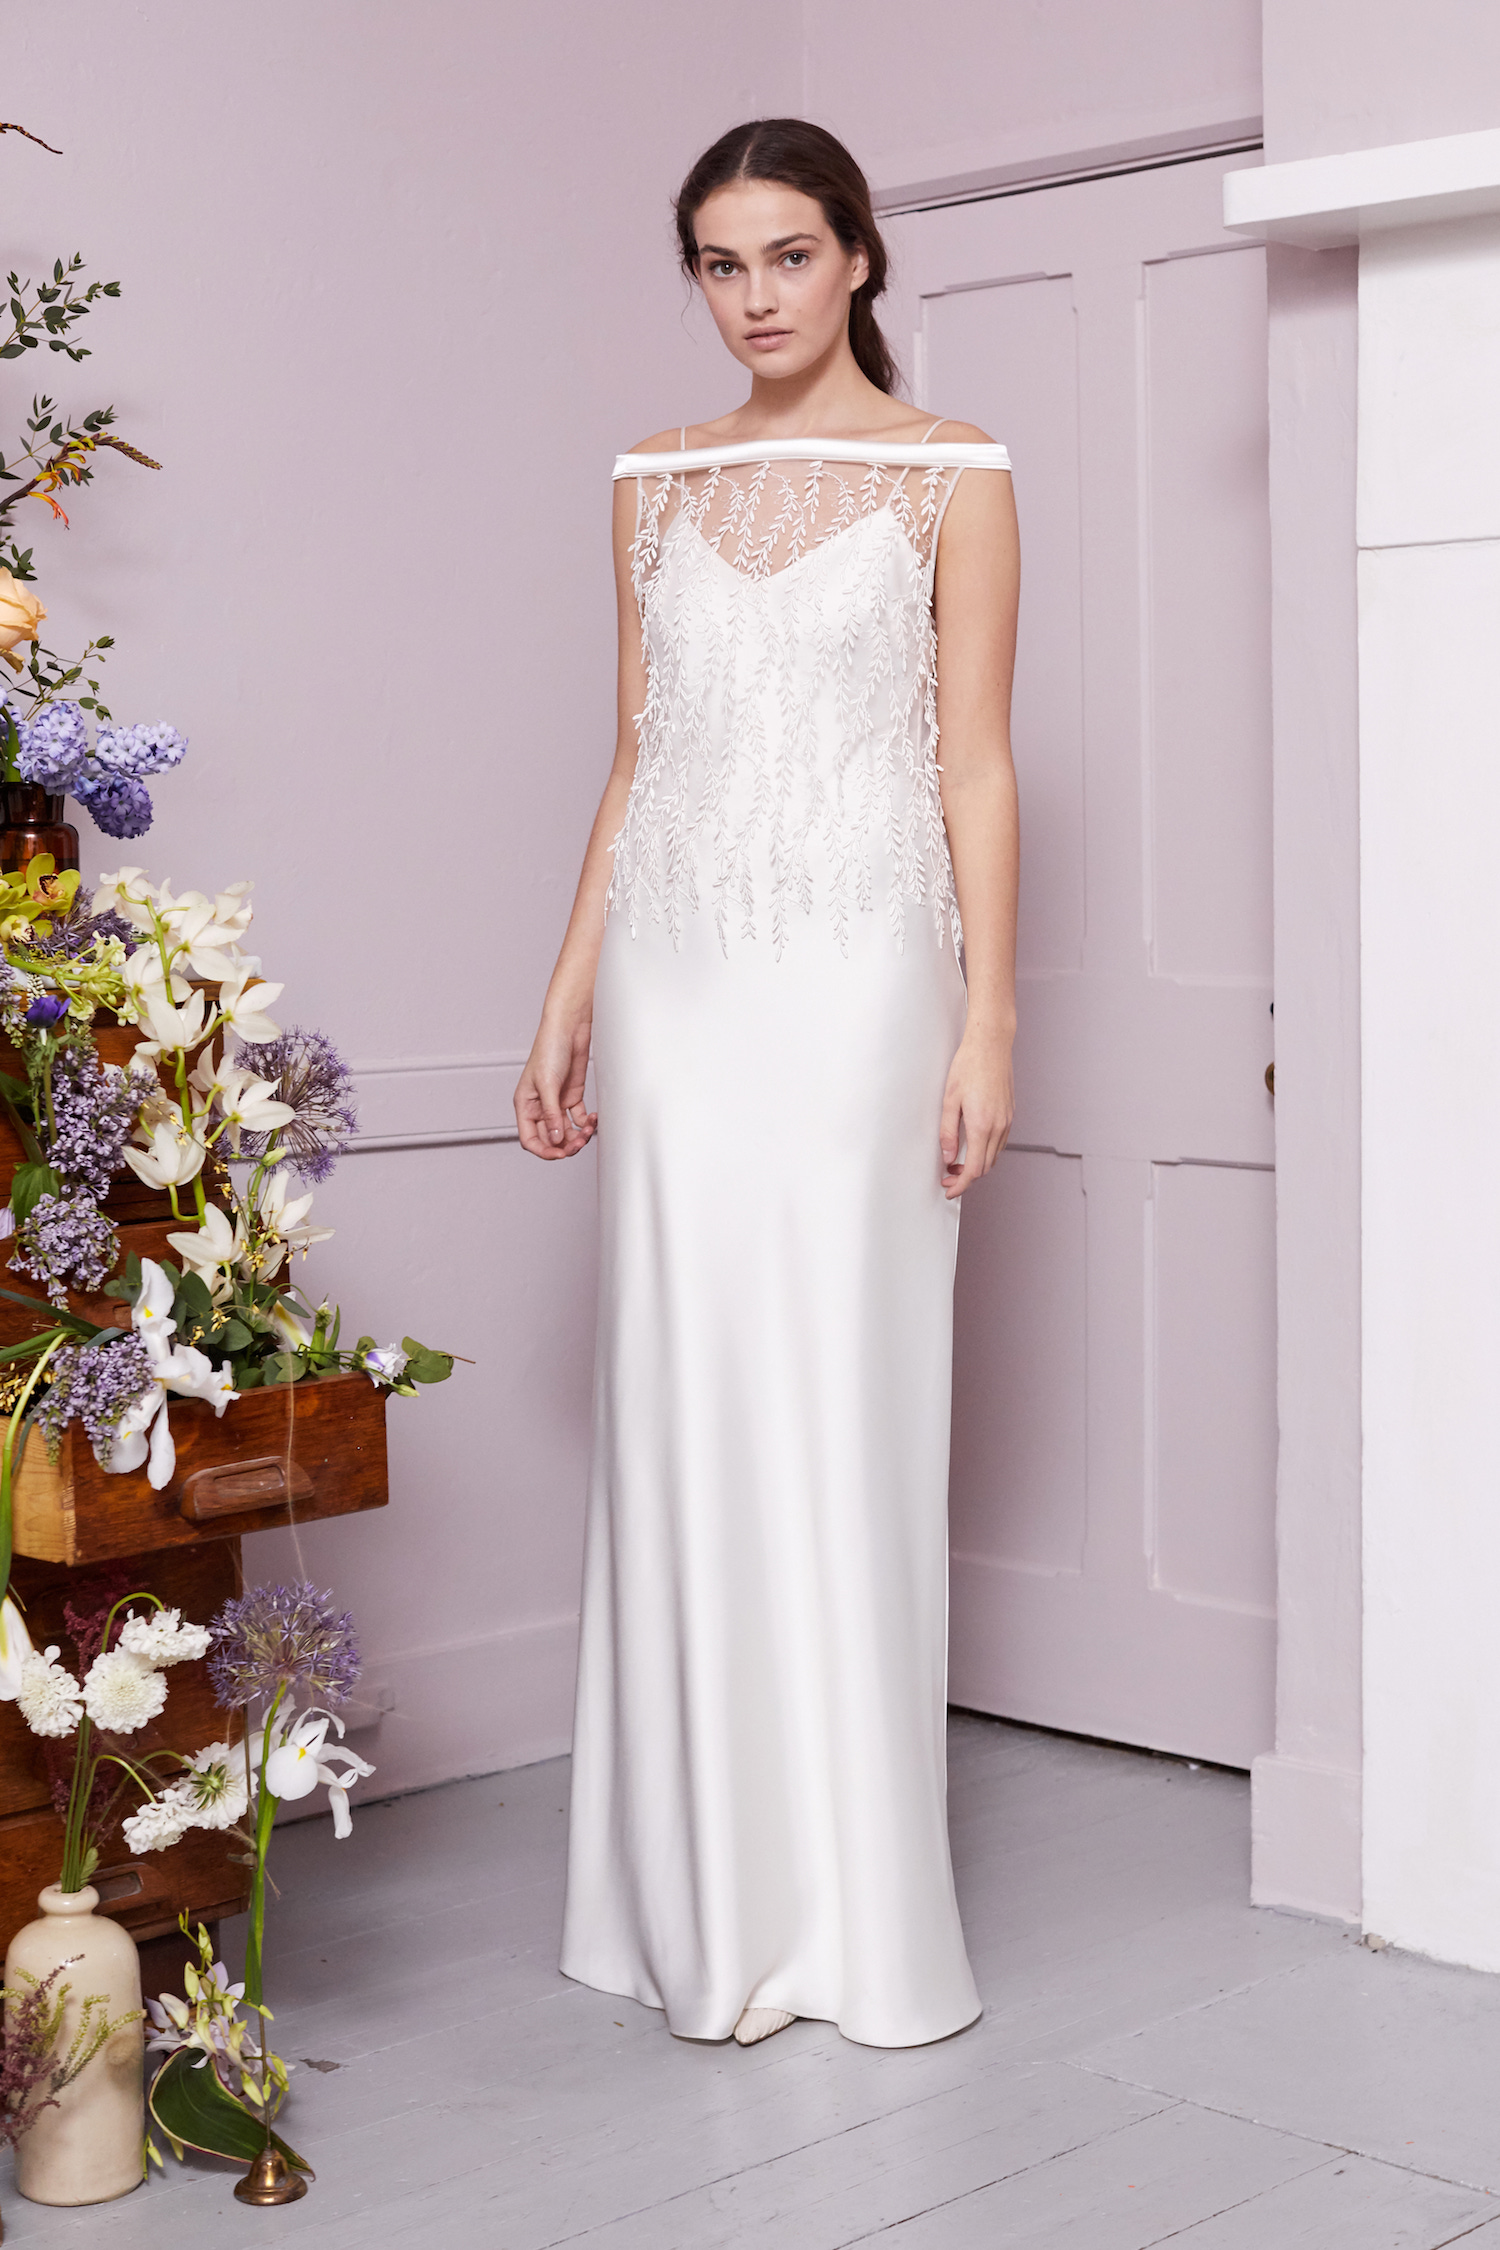 IRENE WILLOW TOP & IRIS SLIP | WEDDING DRESS BY HALFPENNY LONDON